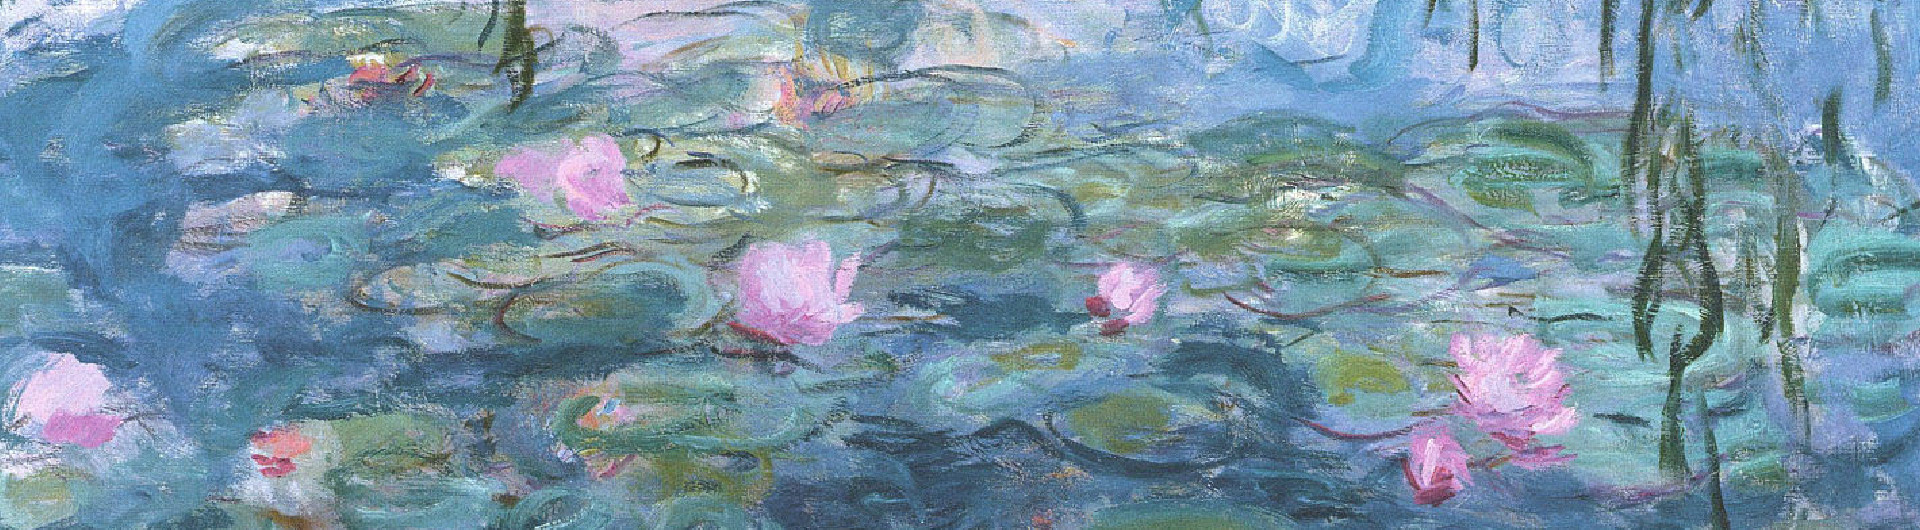 Water Lilies 1916 Was Painted In Oil But Because Monet Used Such Little Paint And Gentle Brush Strokes The Piece Has An Effect More Similar To